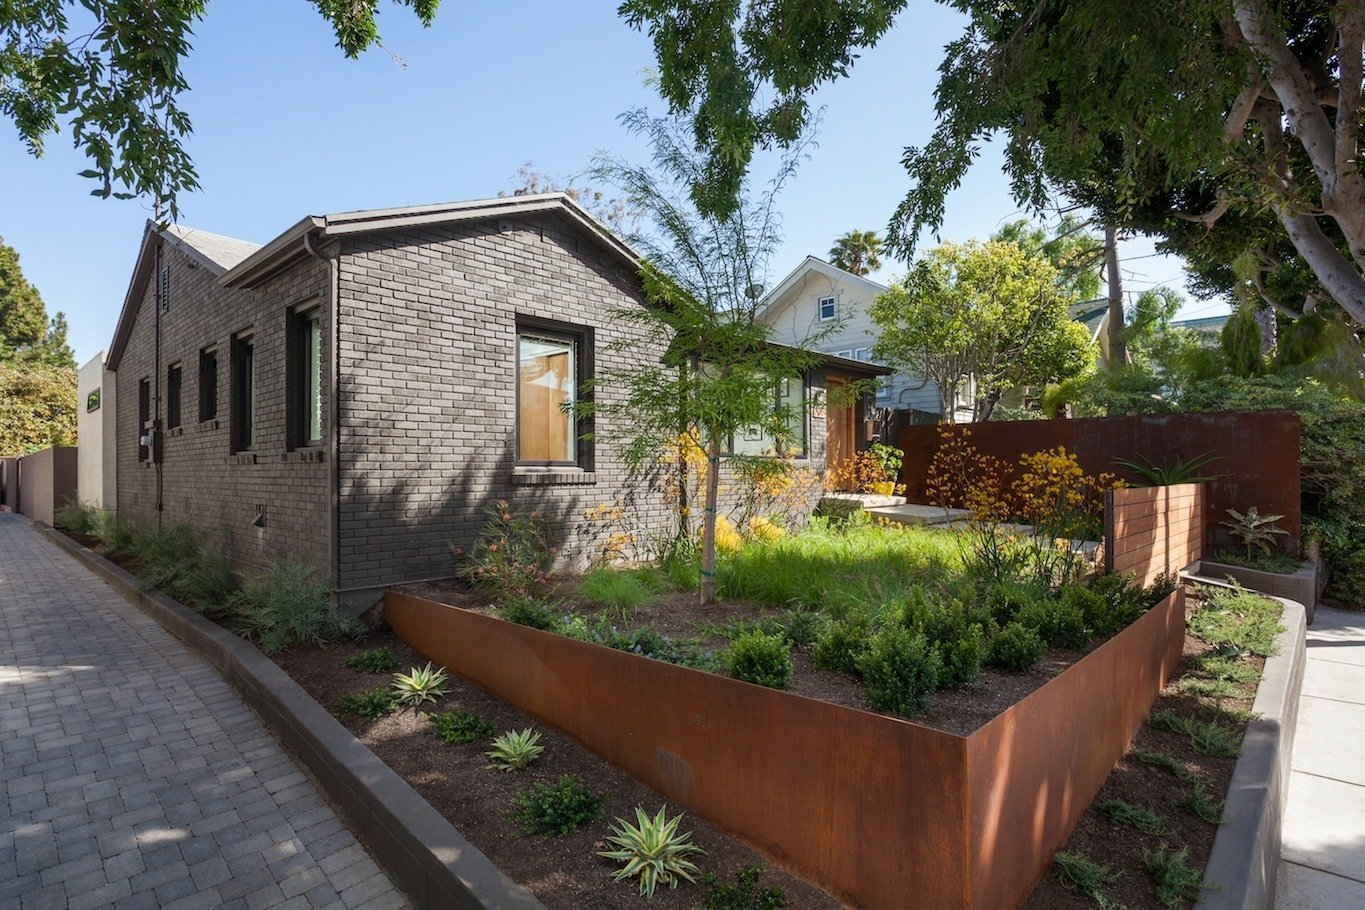 Front yard entry at driveway apron with corten landscape walls and gate beyond